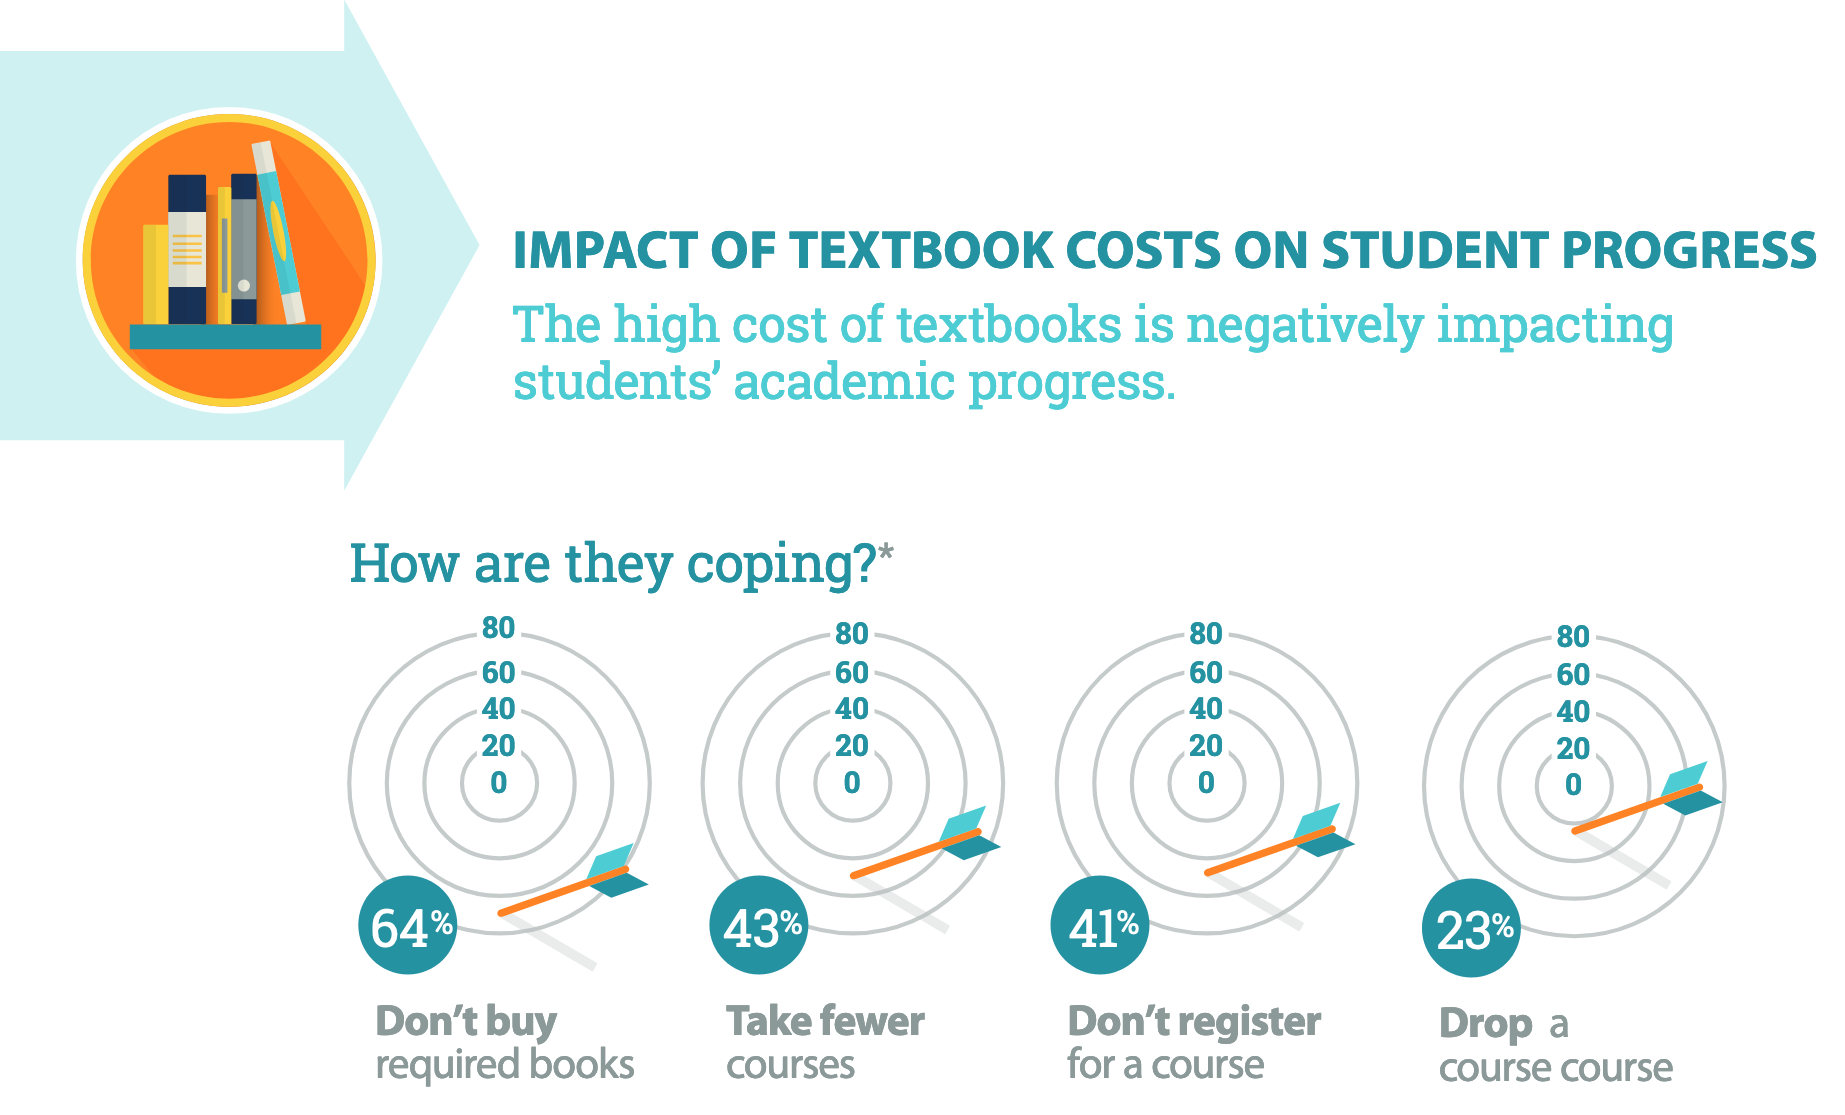 infographic showing impact of high cost of textbooks: 64% of students don't buy required textbooks, 43% take fewer courses, 41% don't register for a course, and 23% drop a course